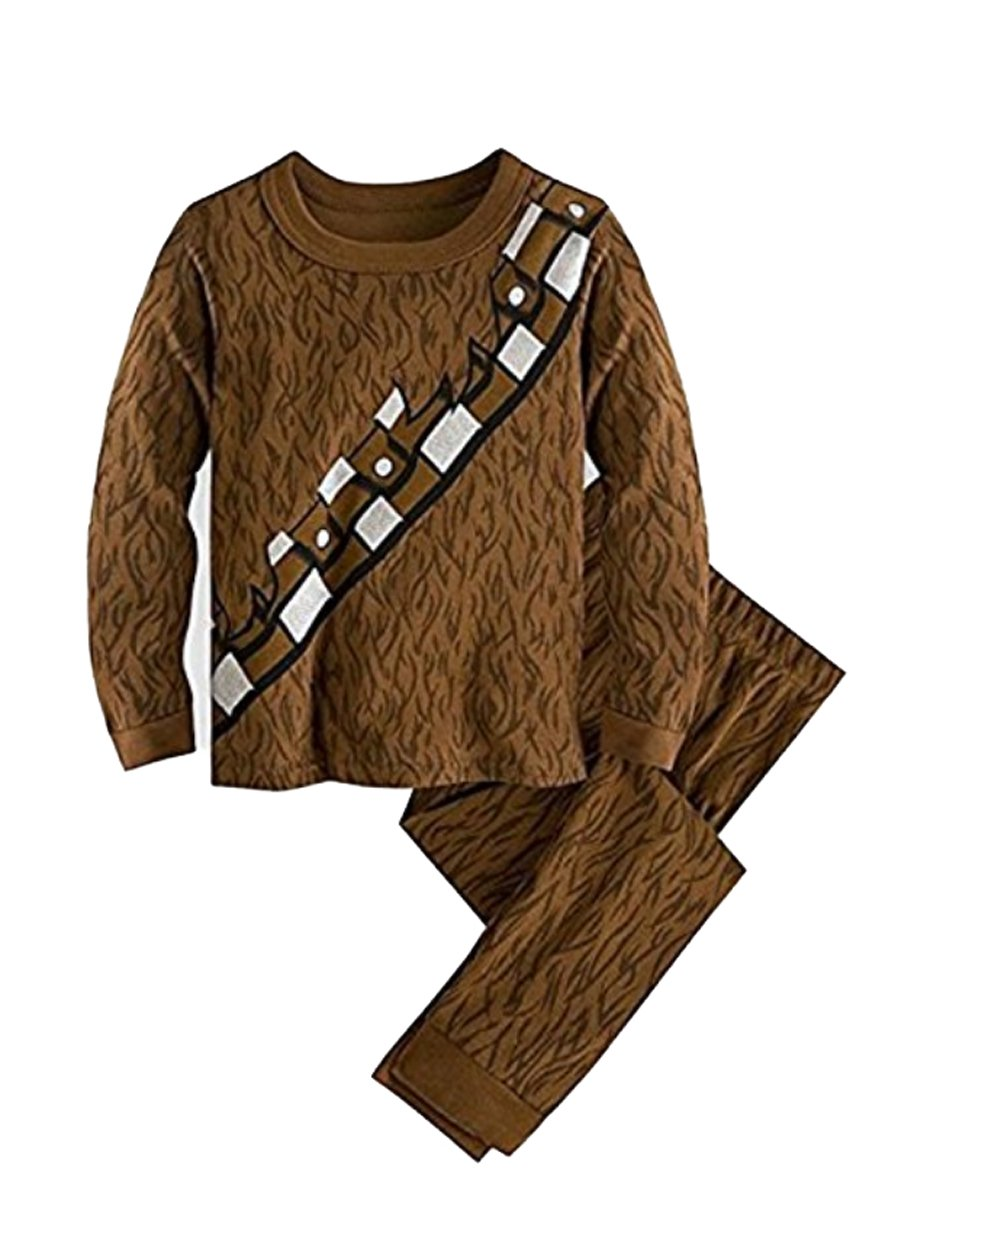 Disney Store Deluxe Chewbacca Chewie Pajama PJ Star Wars Small 6 by Disney (Image #1)